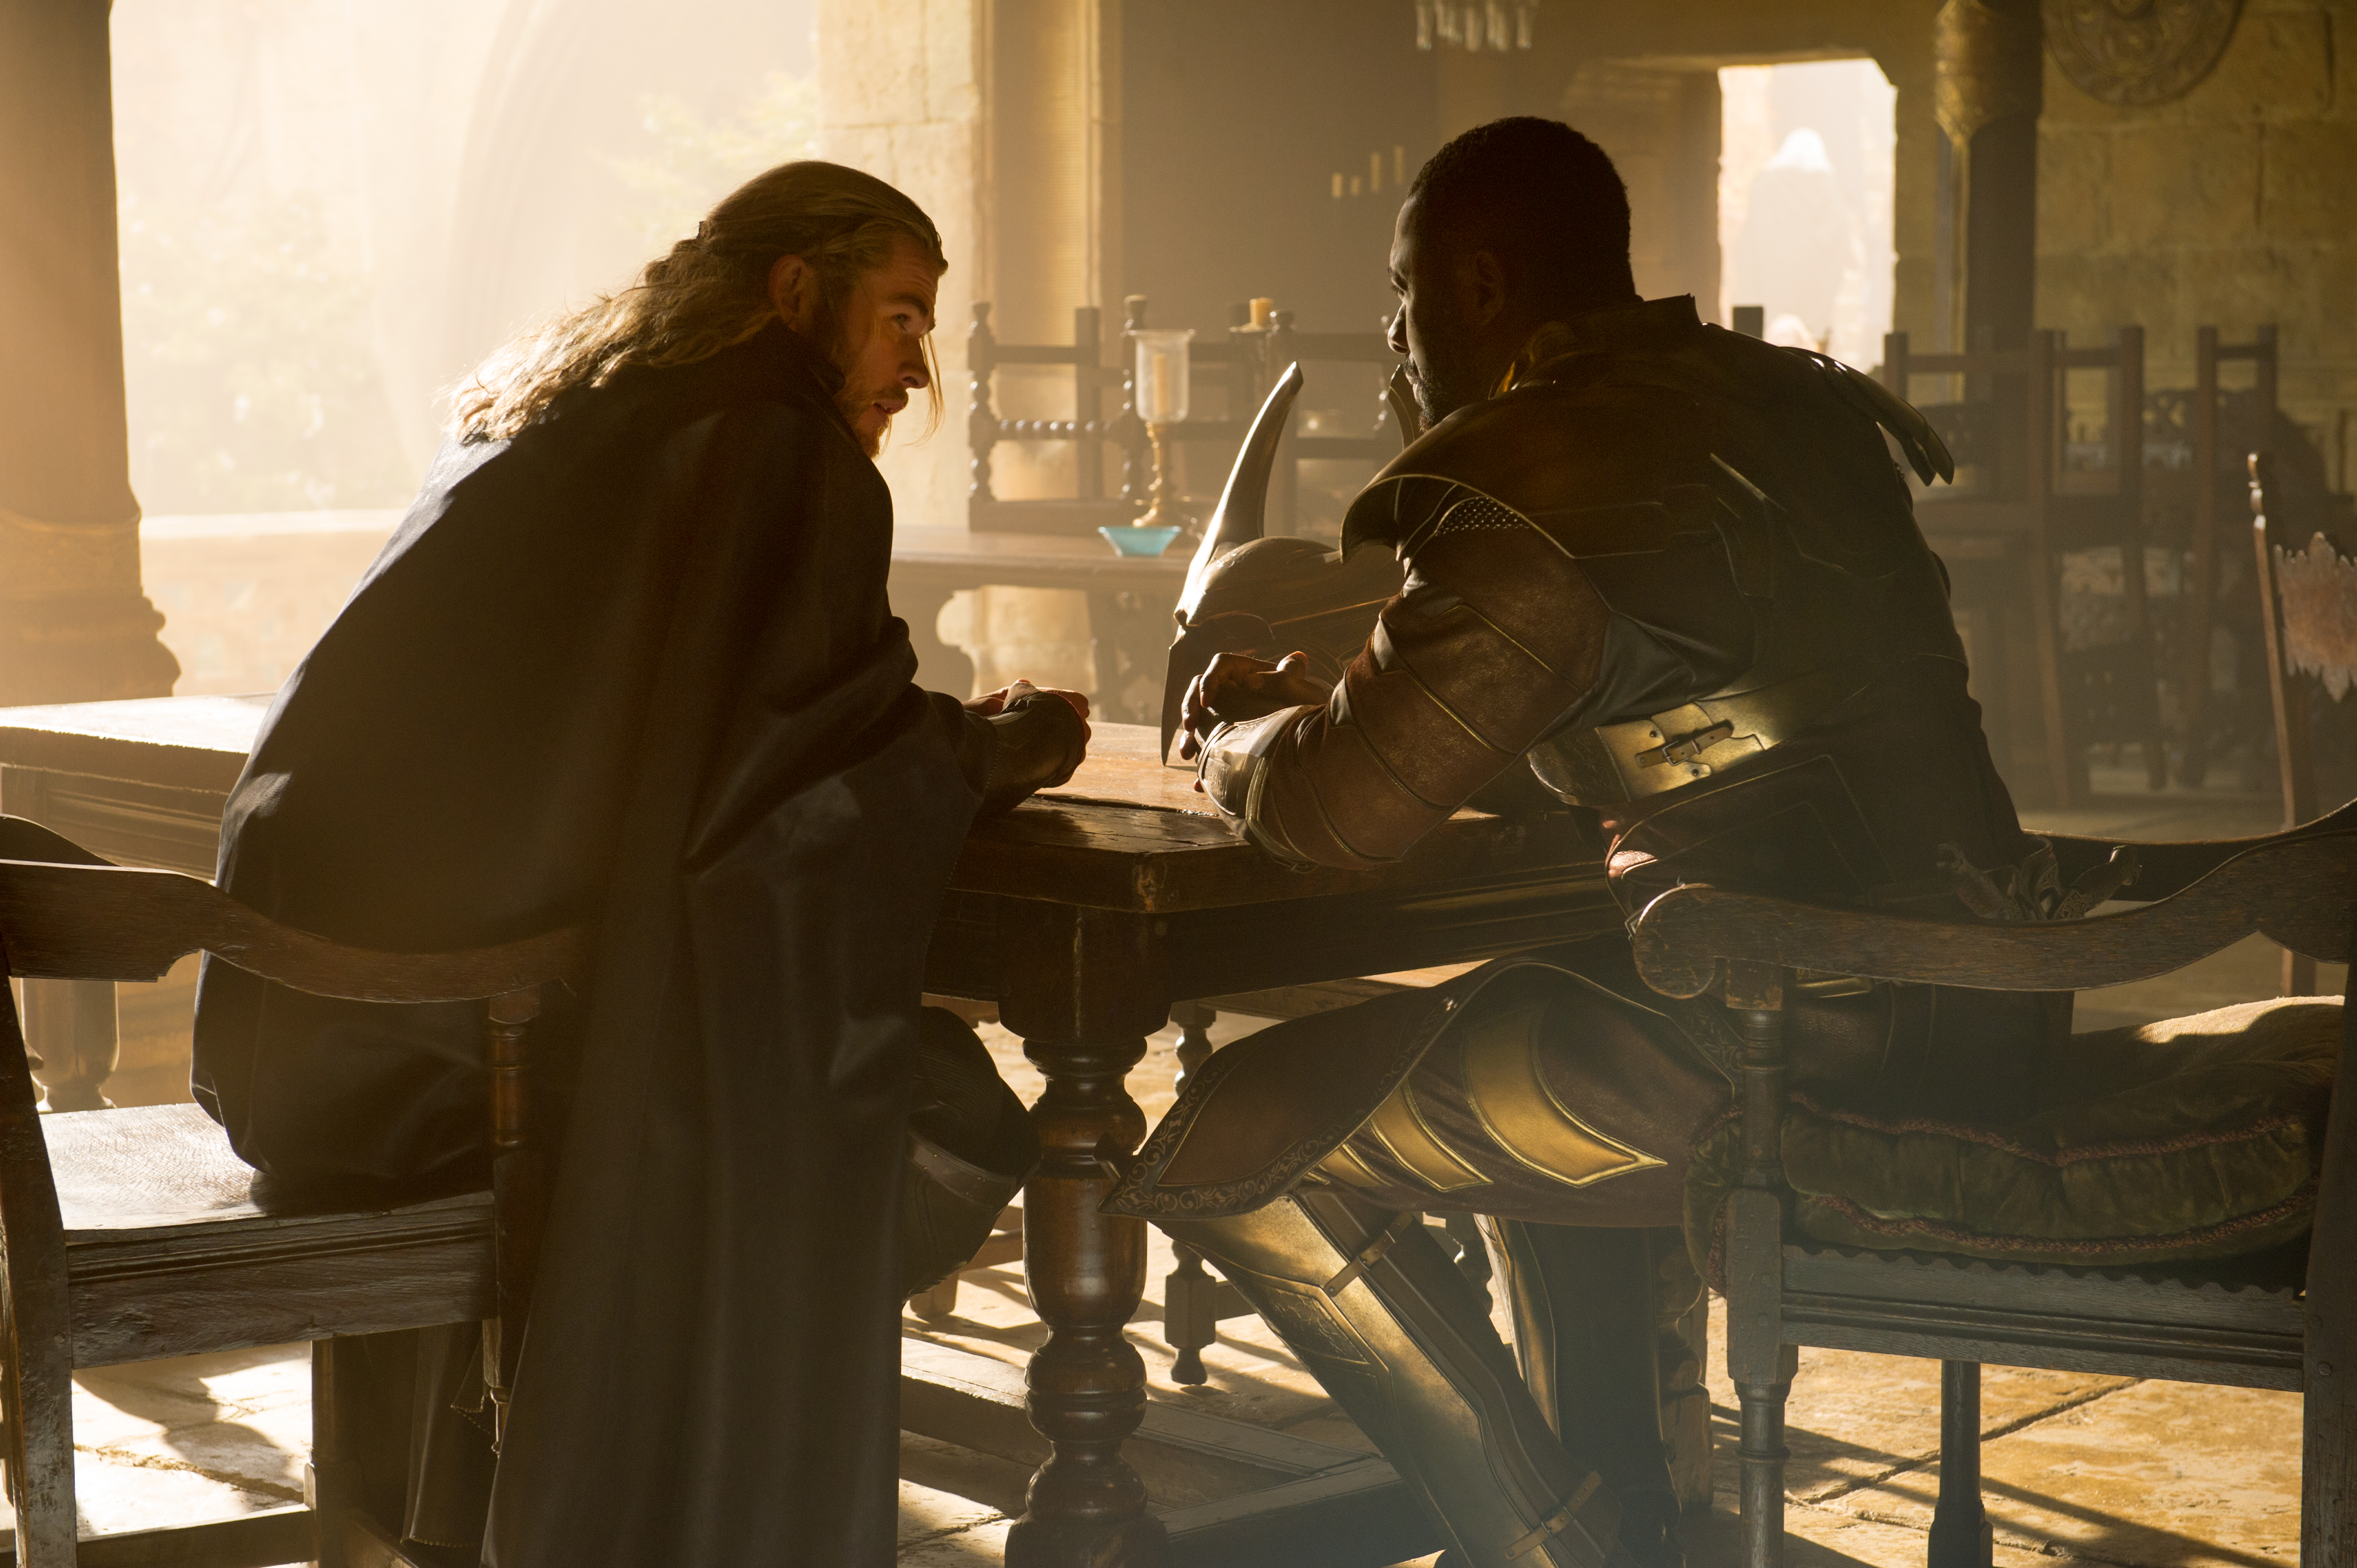 http://vignette2.wikia.nocookie.net/marvelcinematicuniverse/images/f/fe/Thor_Heimdall.jpg/revision/latest?cb=20130909100827